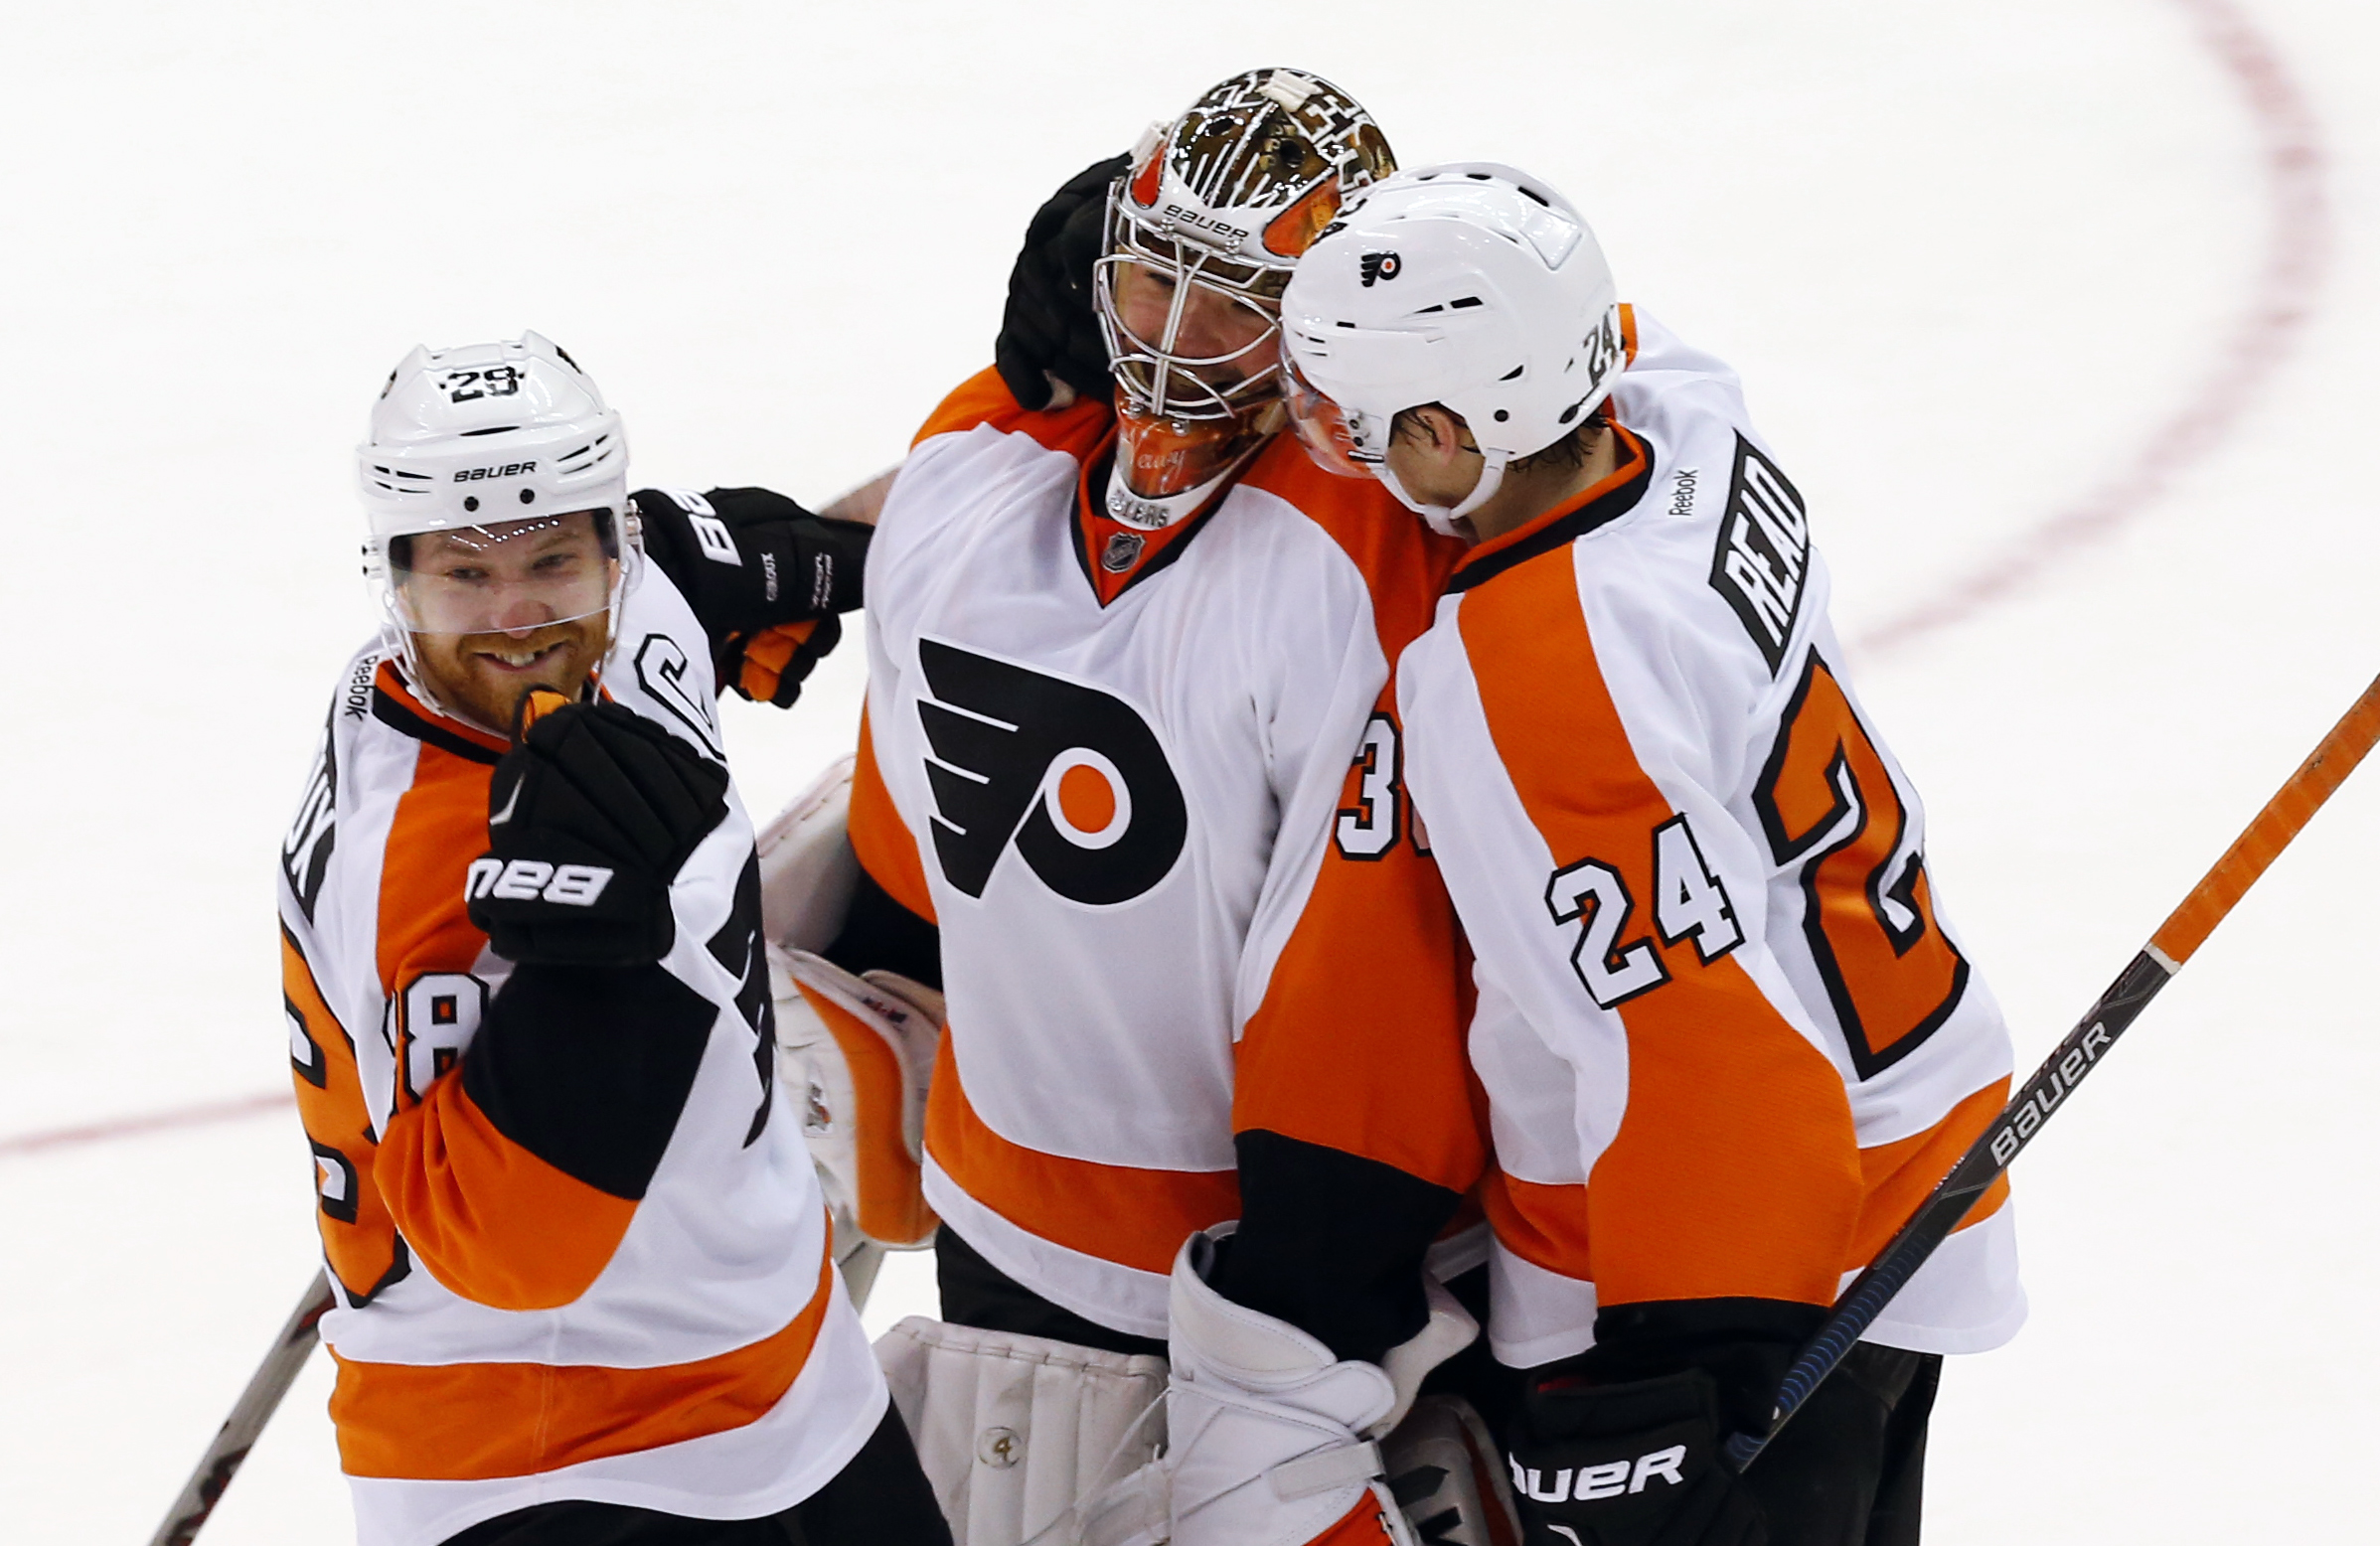 Philadelphia Flyers center Claude Giroux, from left, goalie Michal Neuvirth and Matt Read (24) celebrate after a shootout against the Detroit Red Wings in an NHL hockey game, Sunday, Jan. 17, 2016 in Detroit. Philadelphia won 2-1. (AP Photo/Paul Sancya)